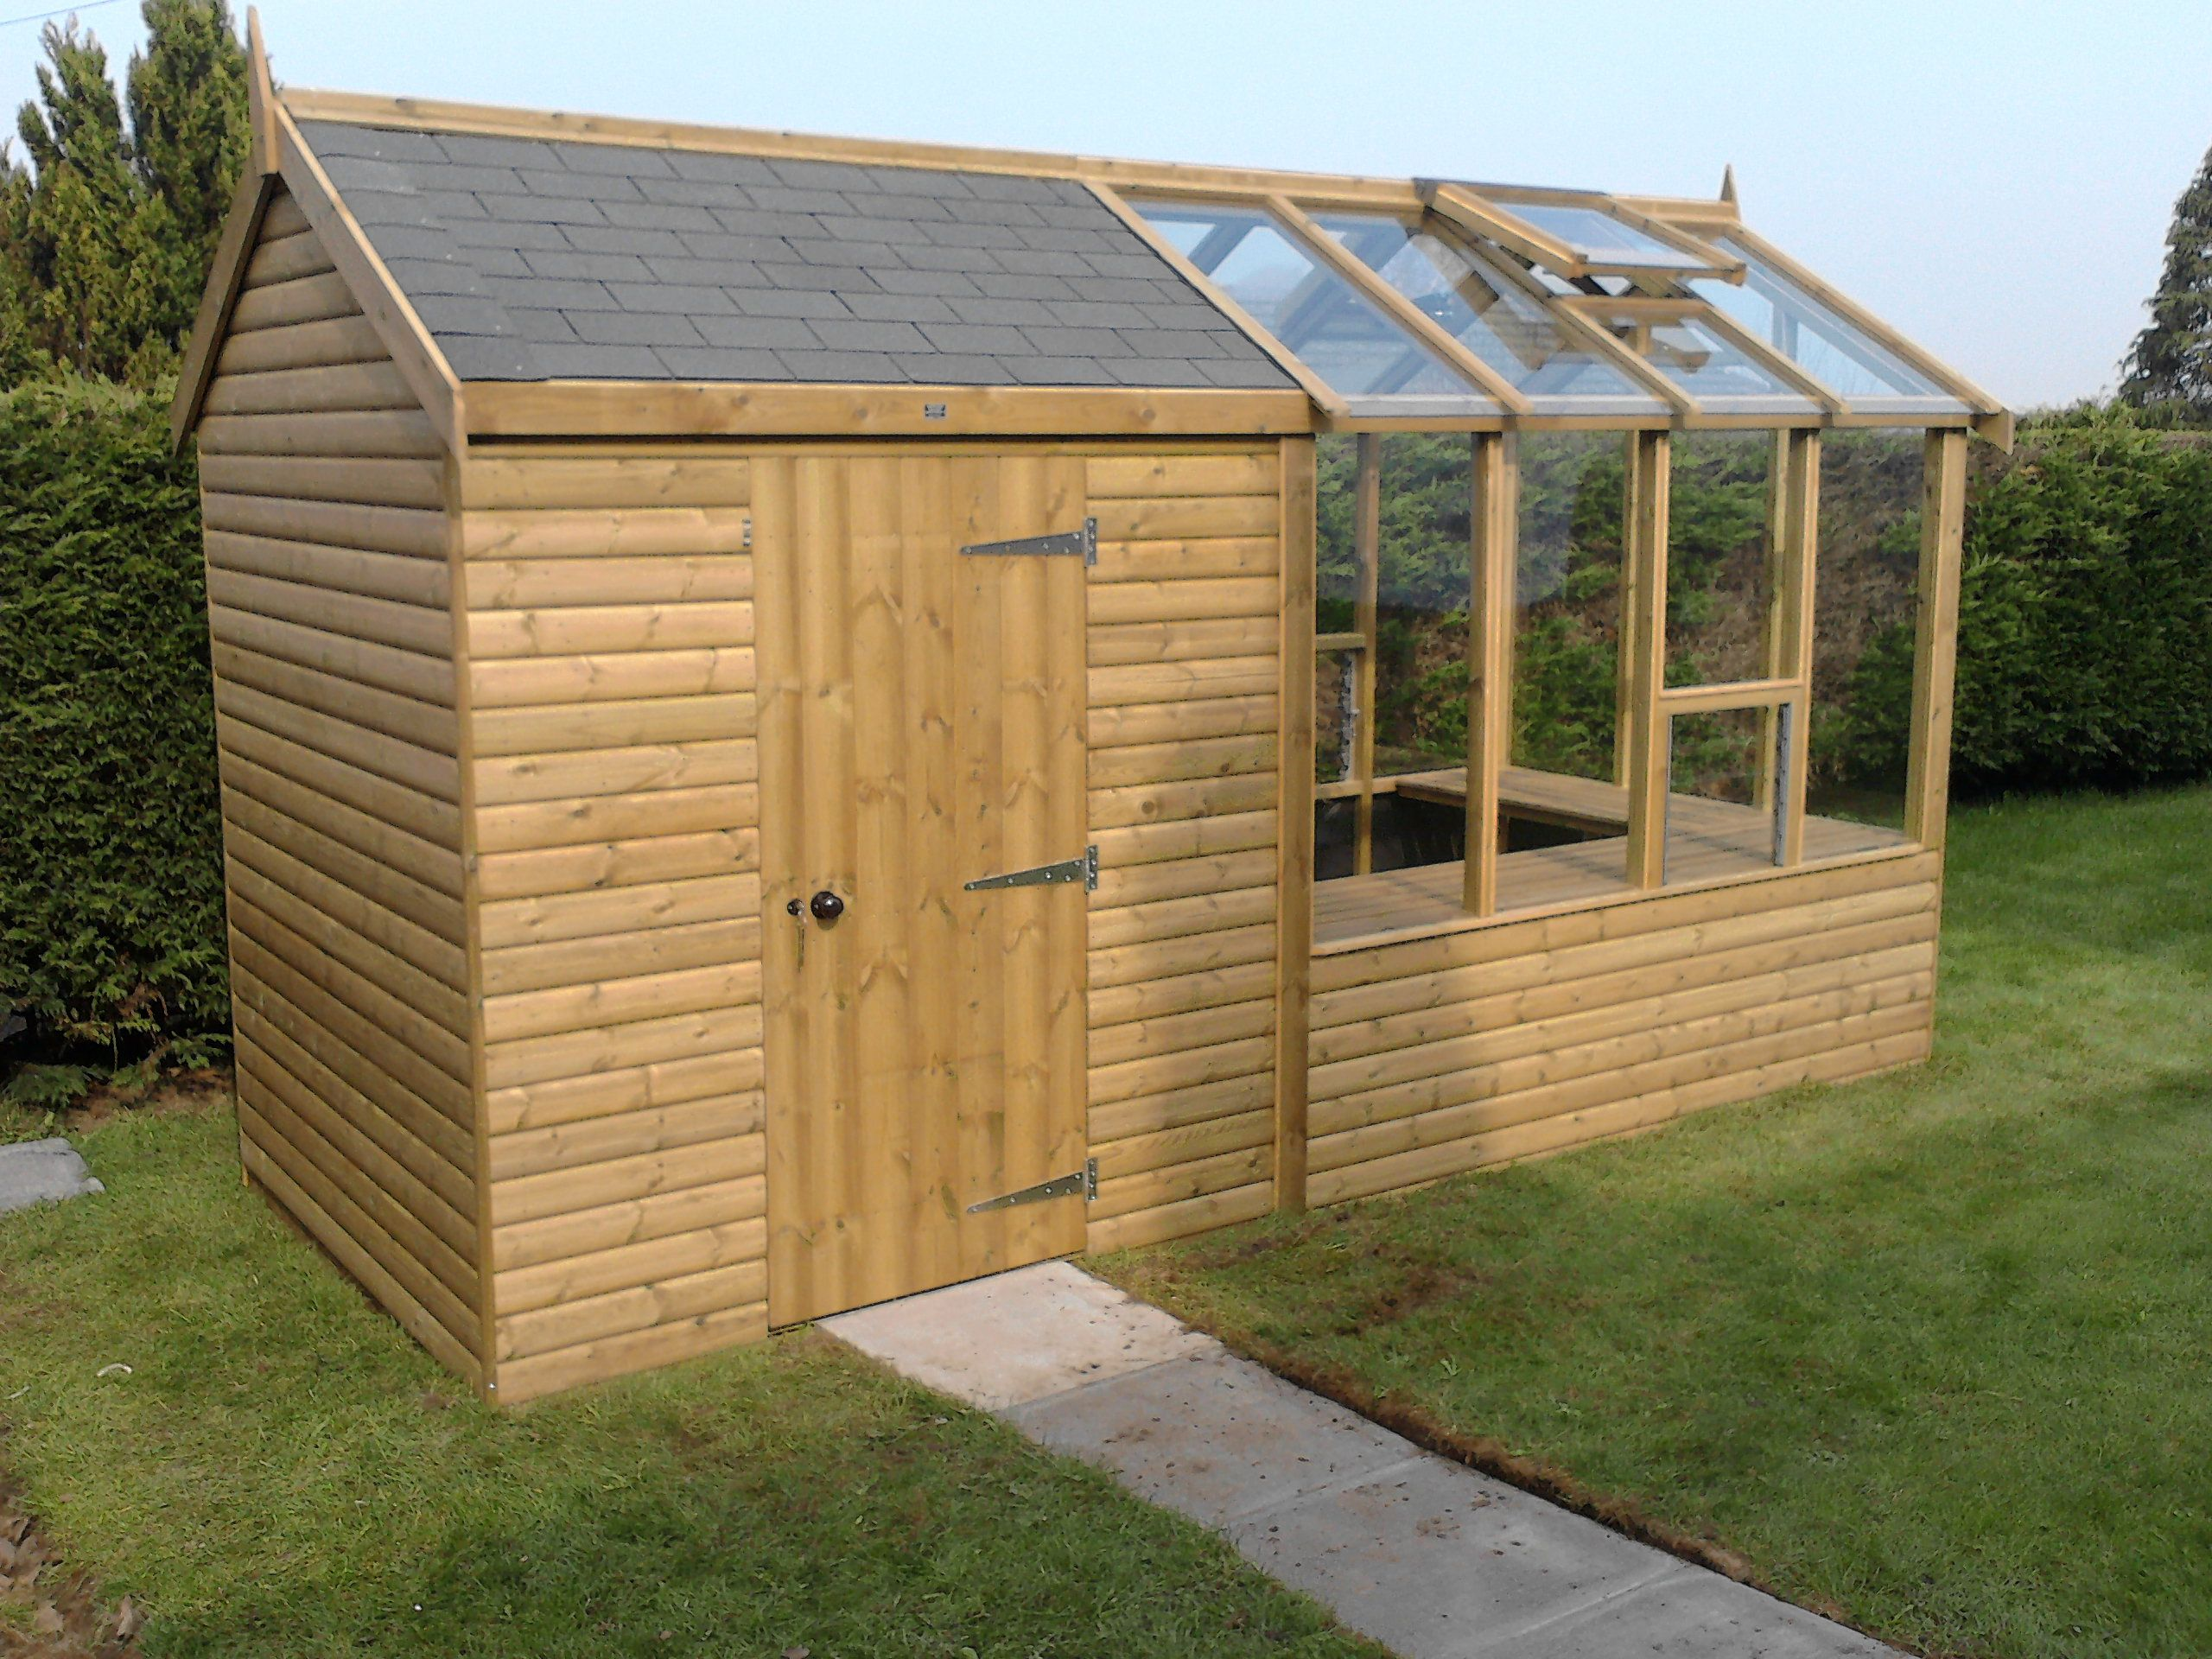 Ryan shed plans 12 000 shed plans and designs for easy for Design and build your own shed